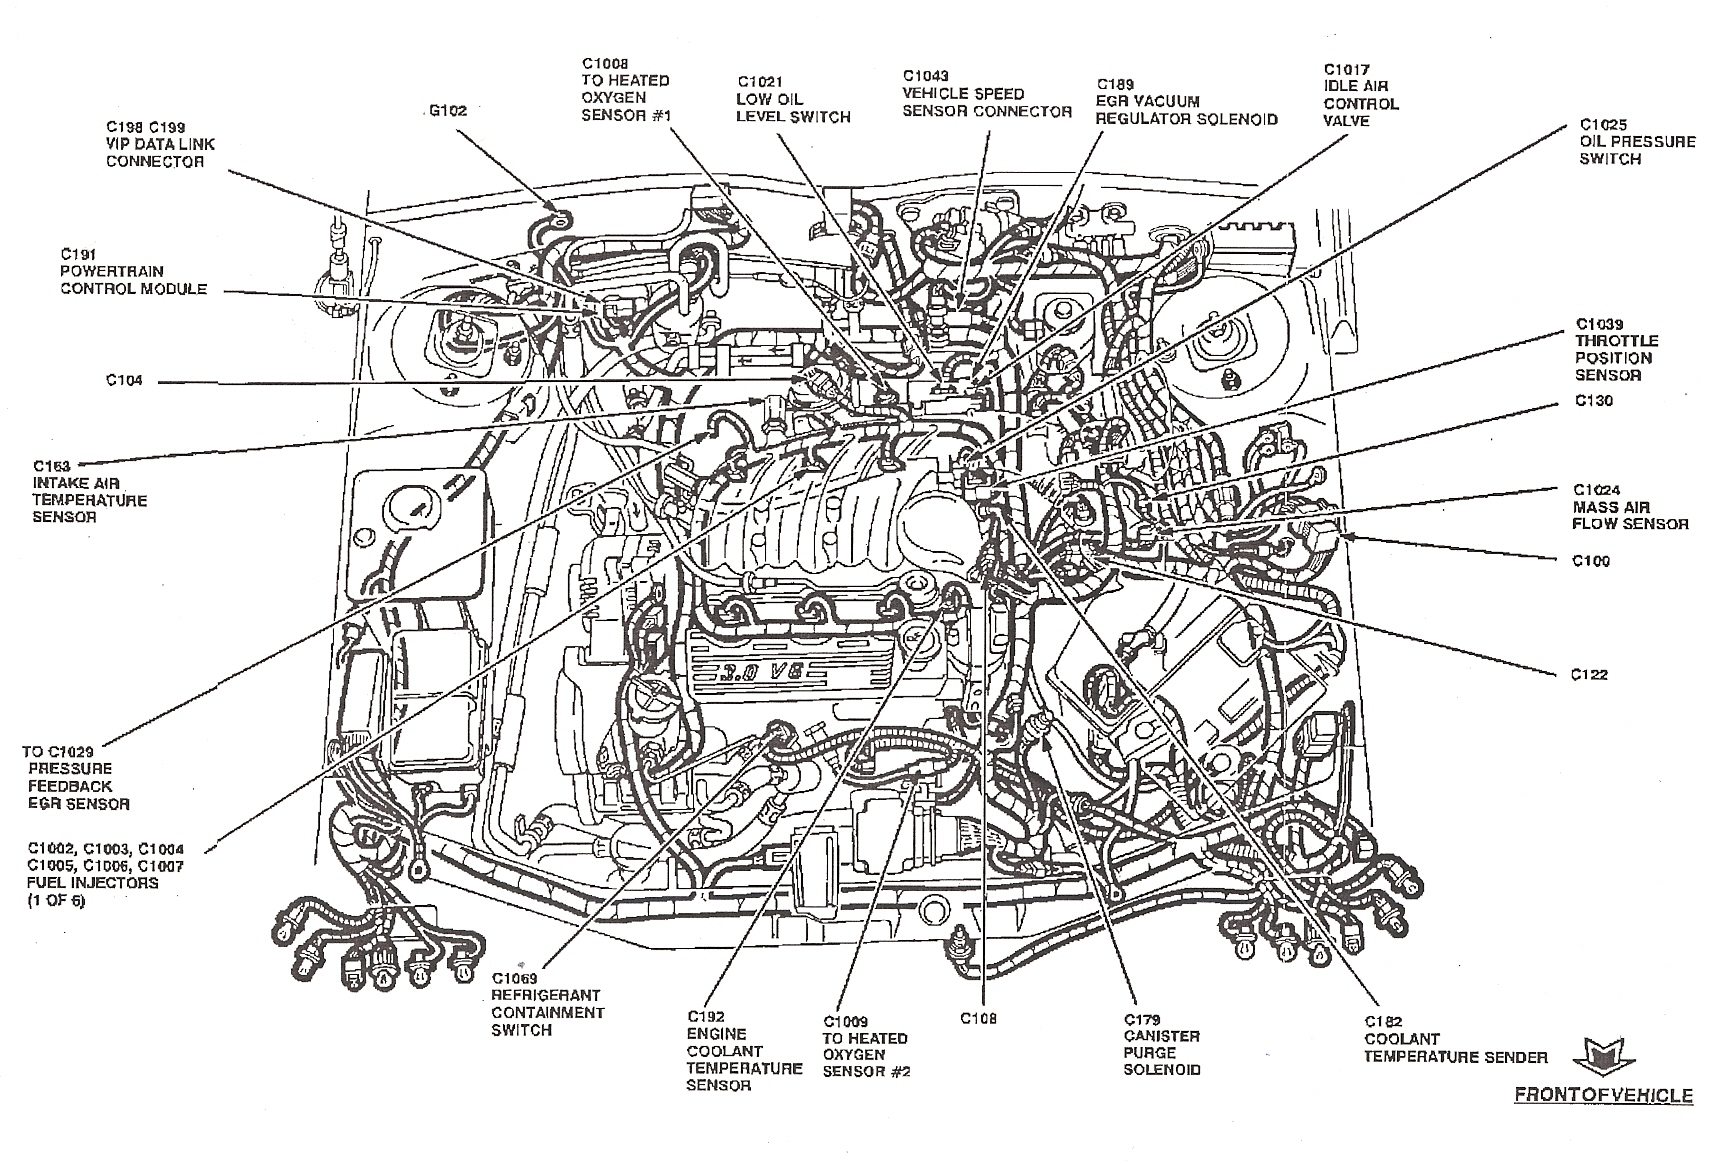 94 taurus jbl stereo wiring diagram 100 images 2012 avenger 94 ford taurus fuse box diagram at alyssarenee.co